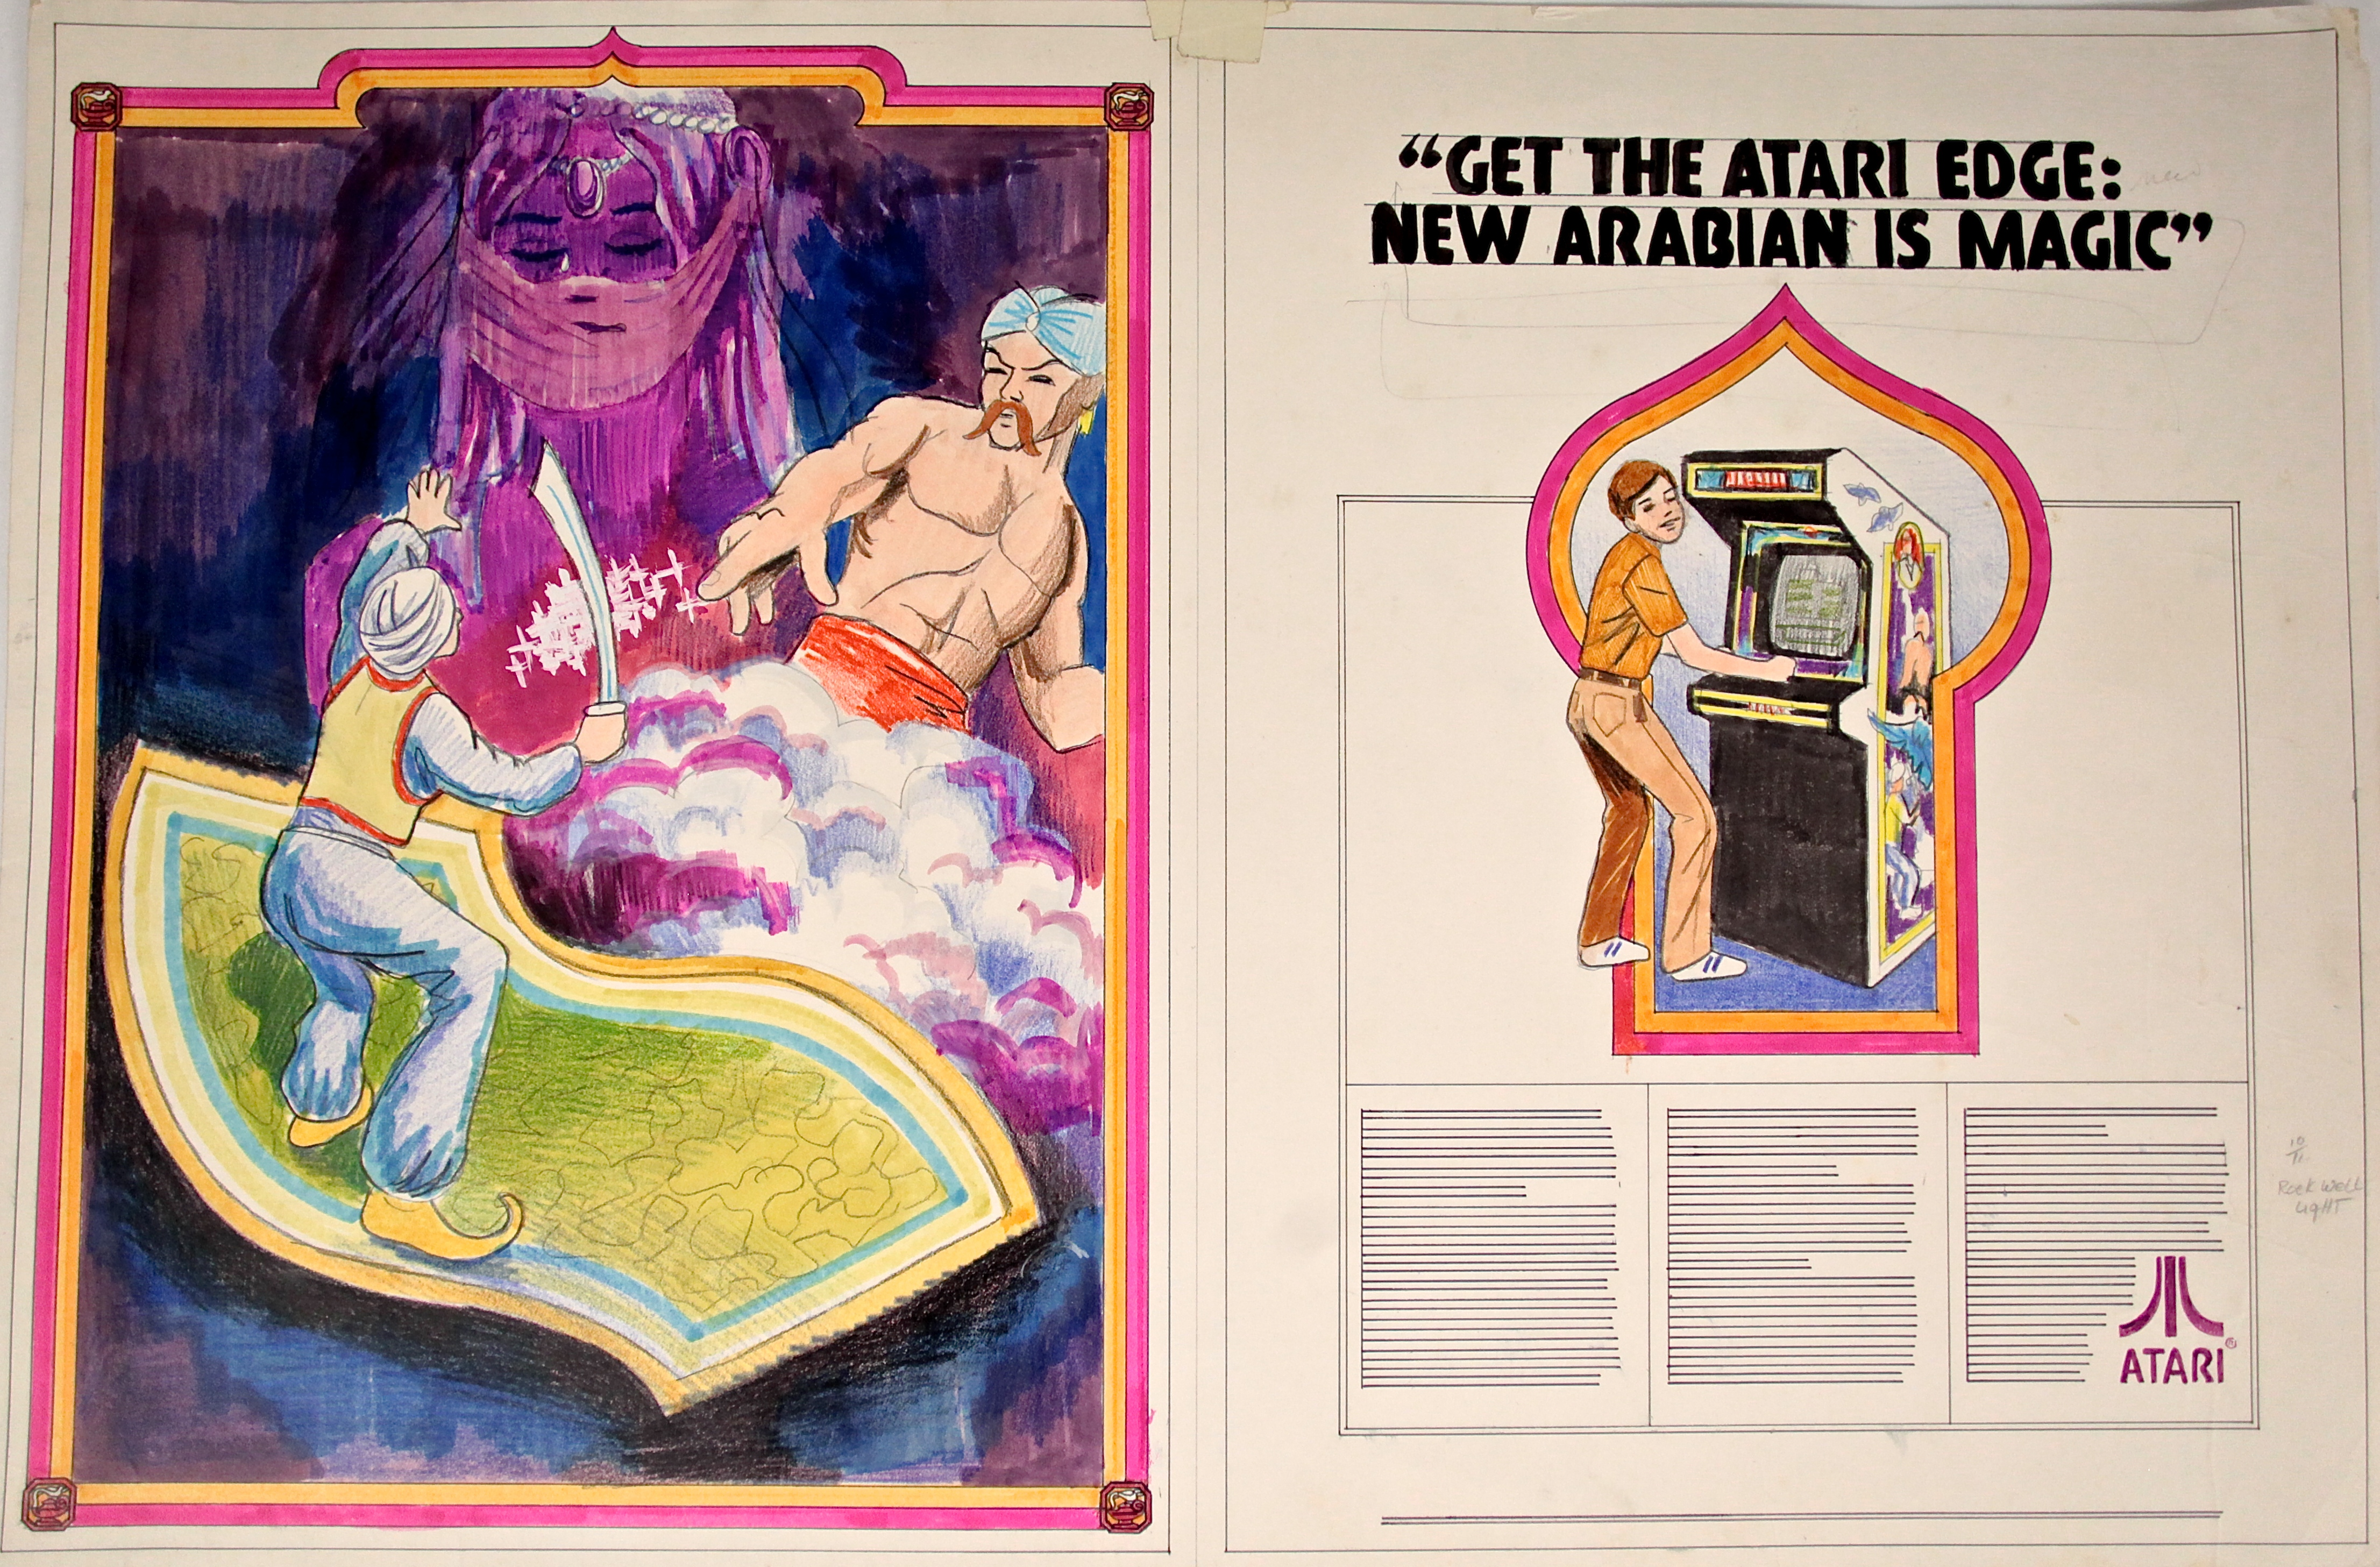 Print-Advertising-Concept-Mock-up-for-Atari's-Arabian-Arcade-Video-Game-Courtesy-of-The-Strong-Rochester-NY.